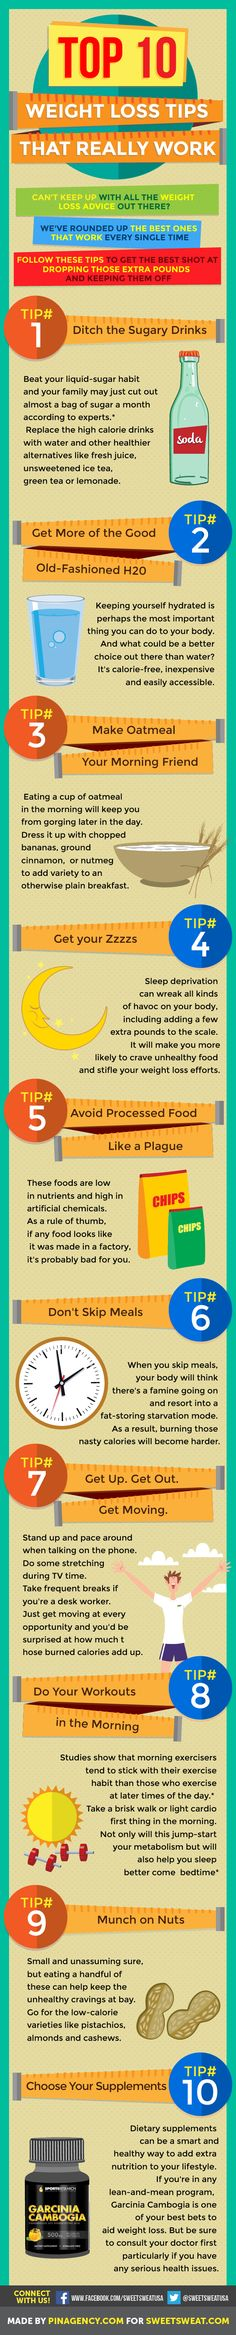 The Top 10 Weight Loss Tips That Really Work